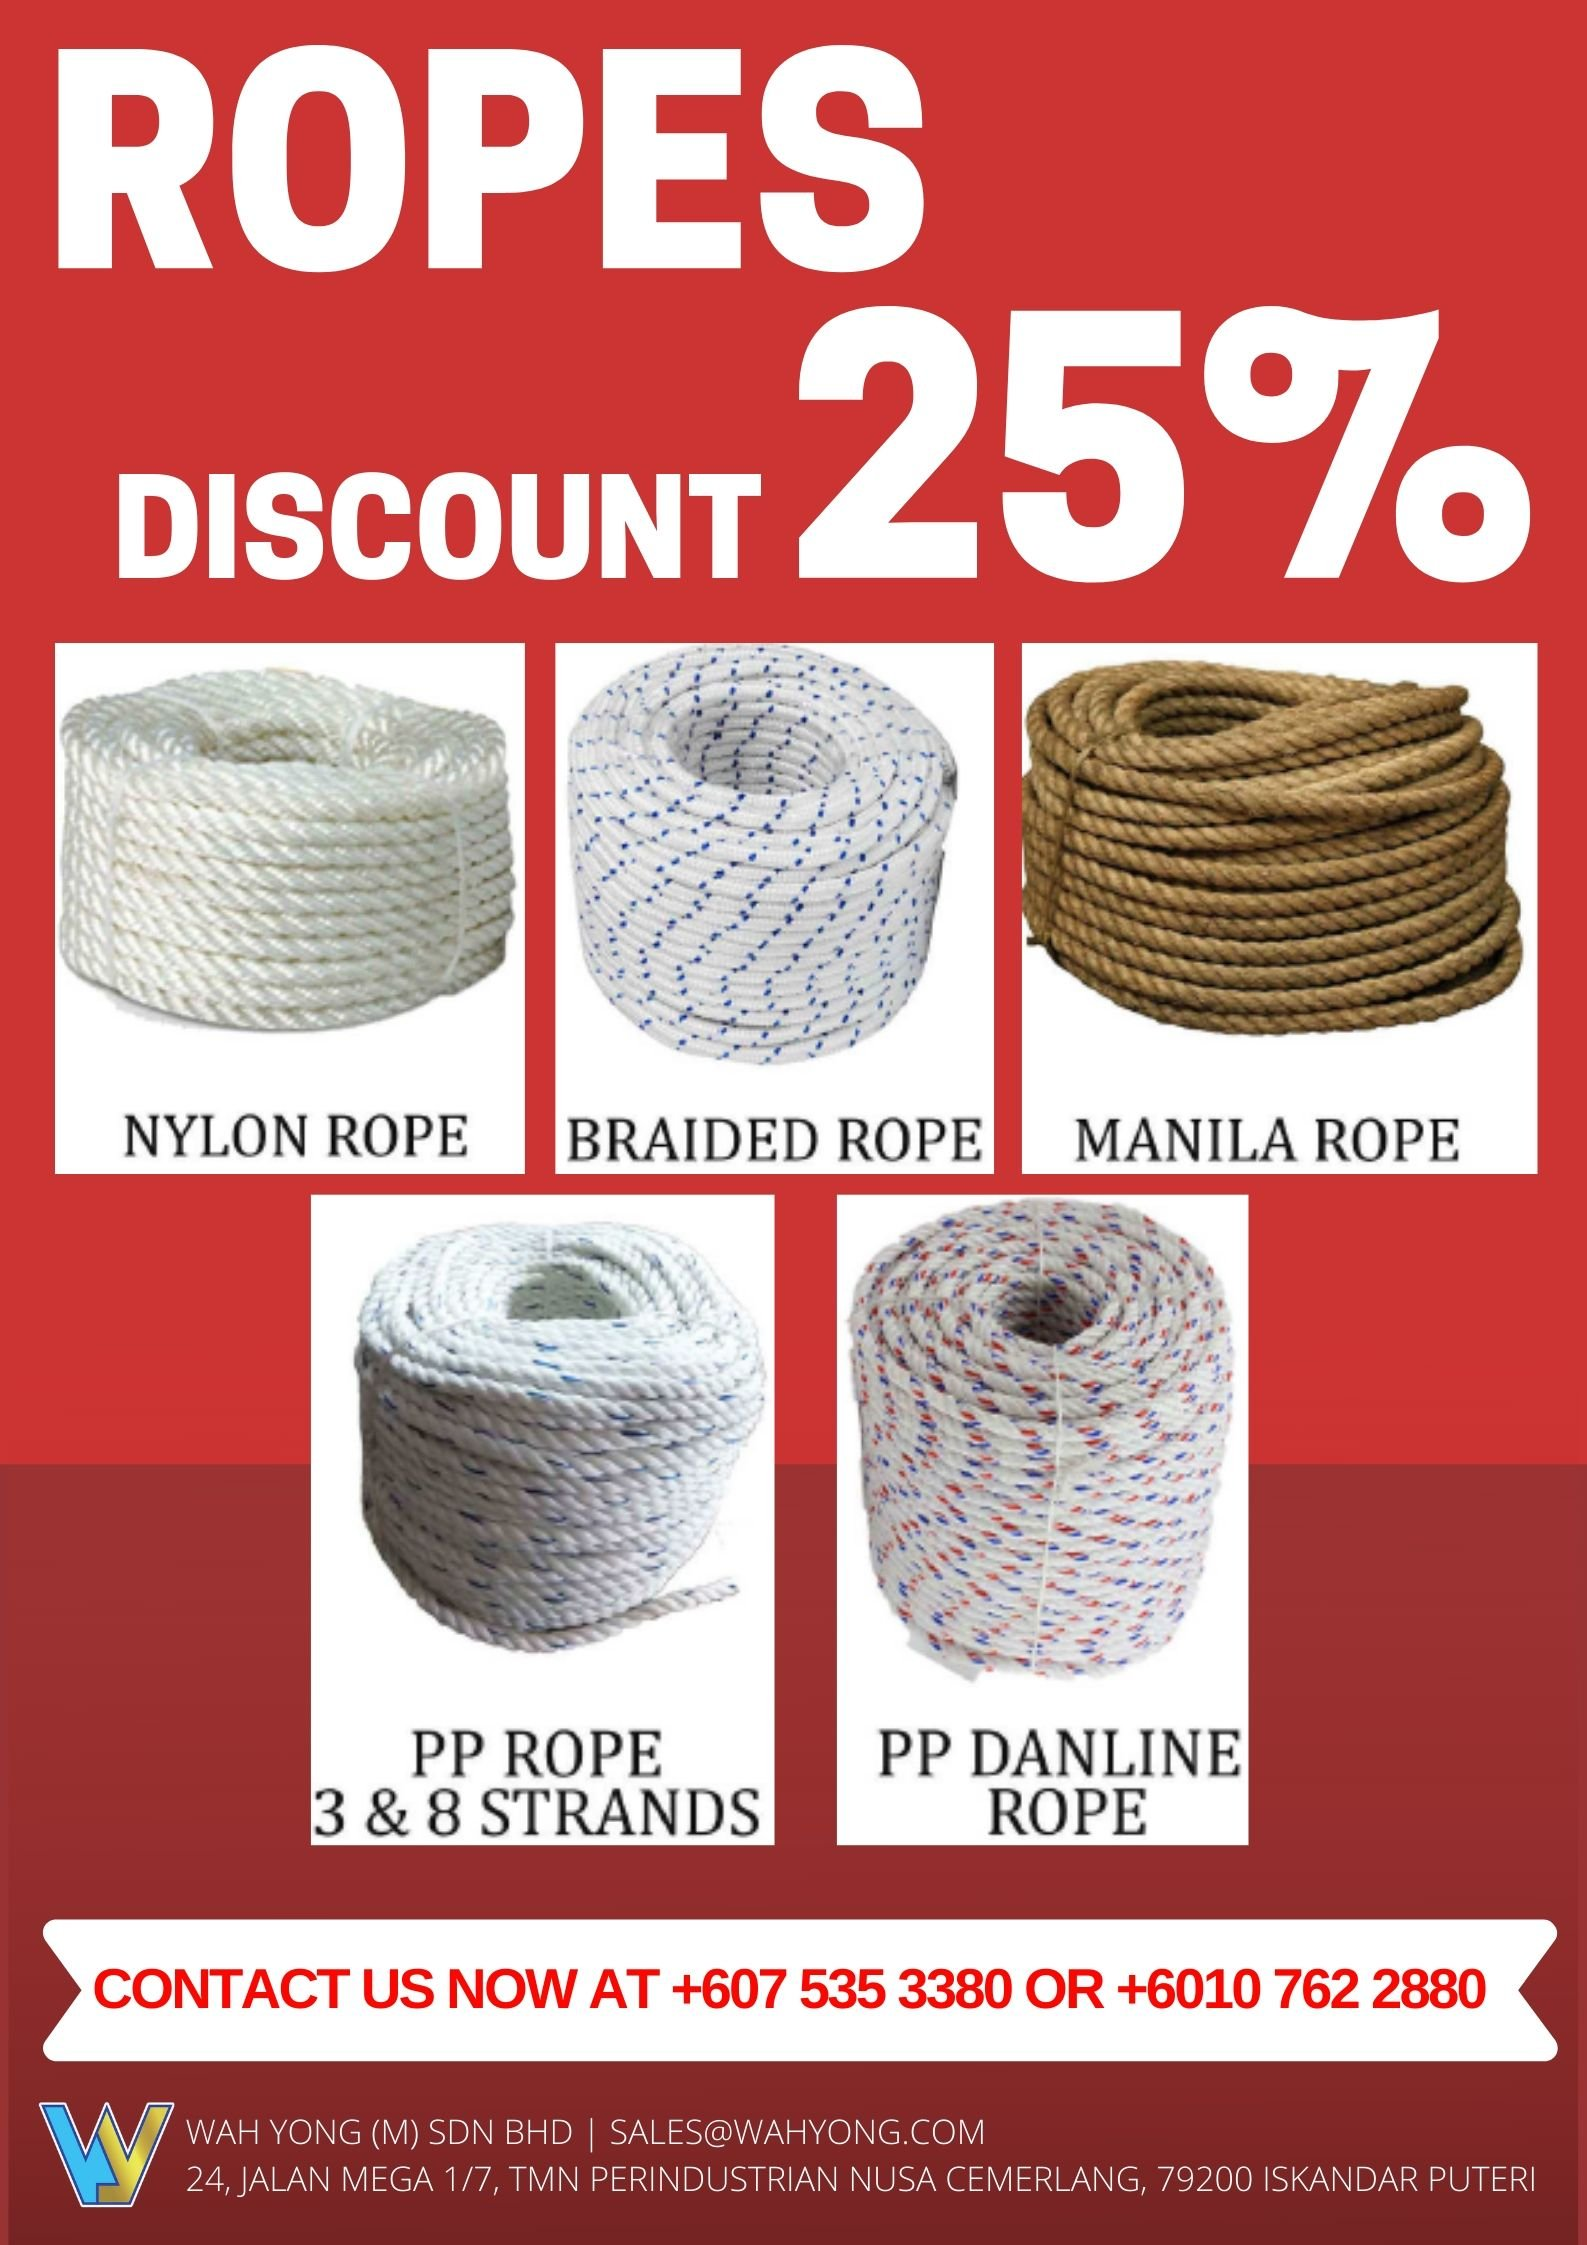 ROPES PROMOTION - DISCOUNT 25%